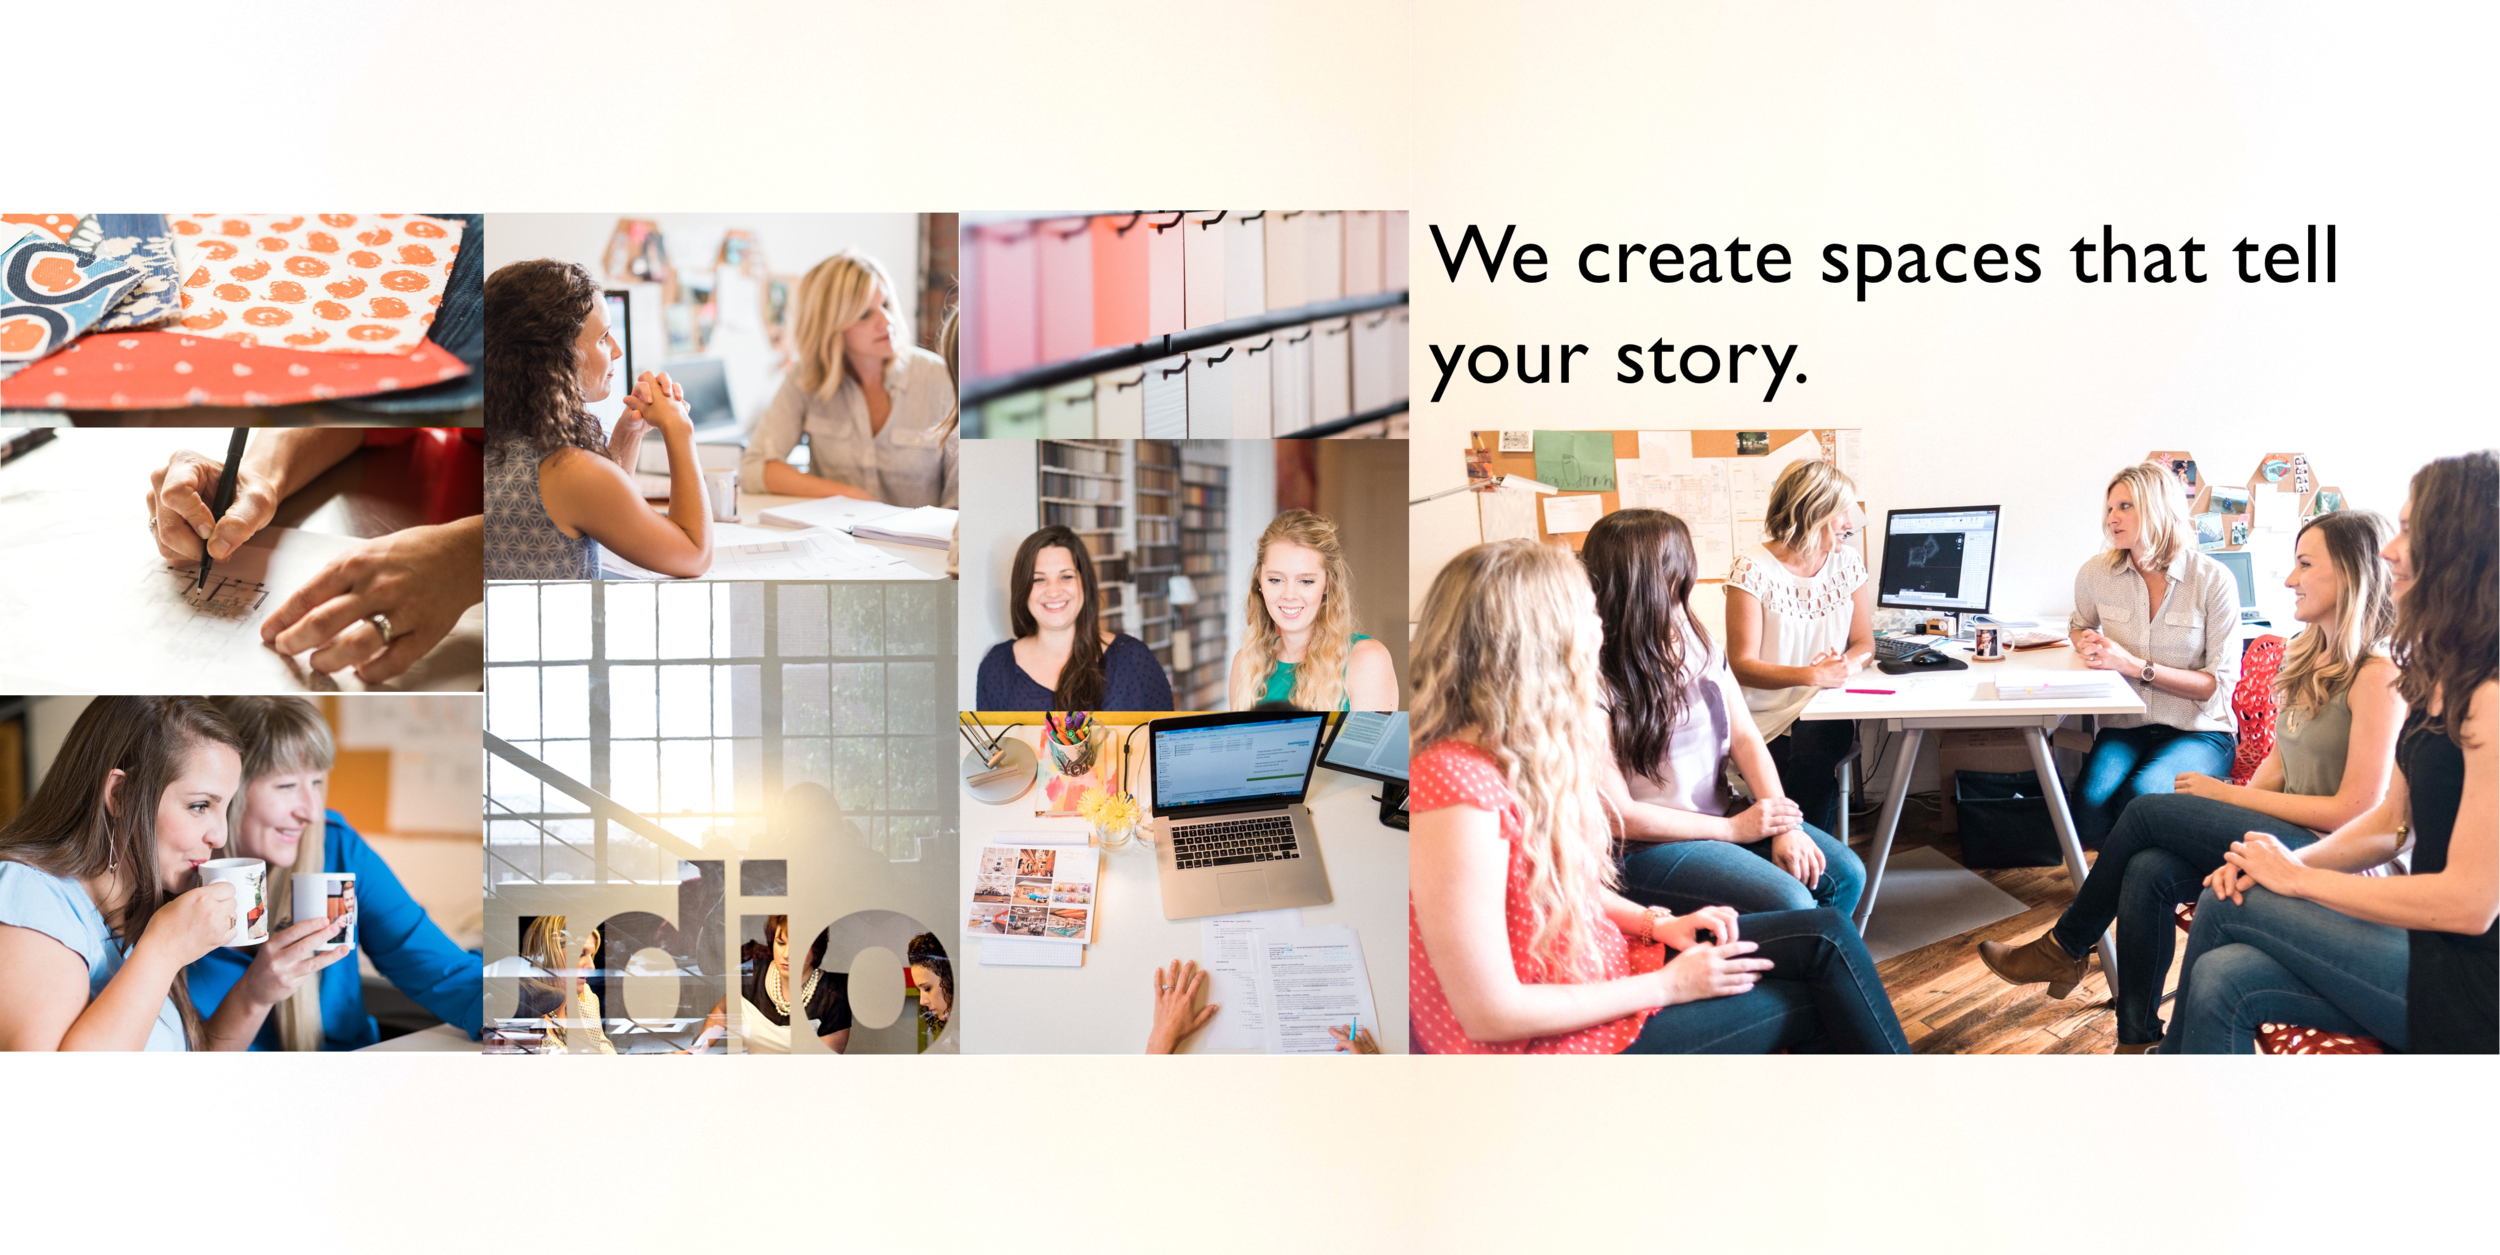 studio121_we_create_spaces_that_tell_your_story_3.png